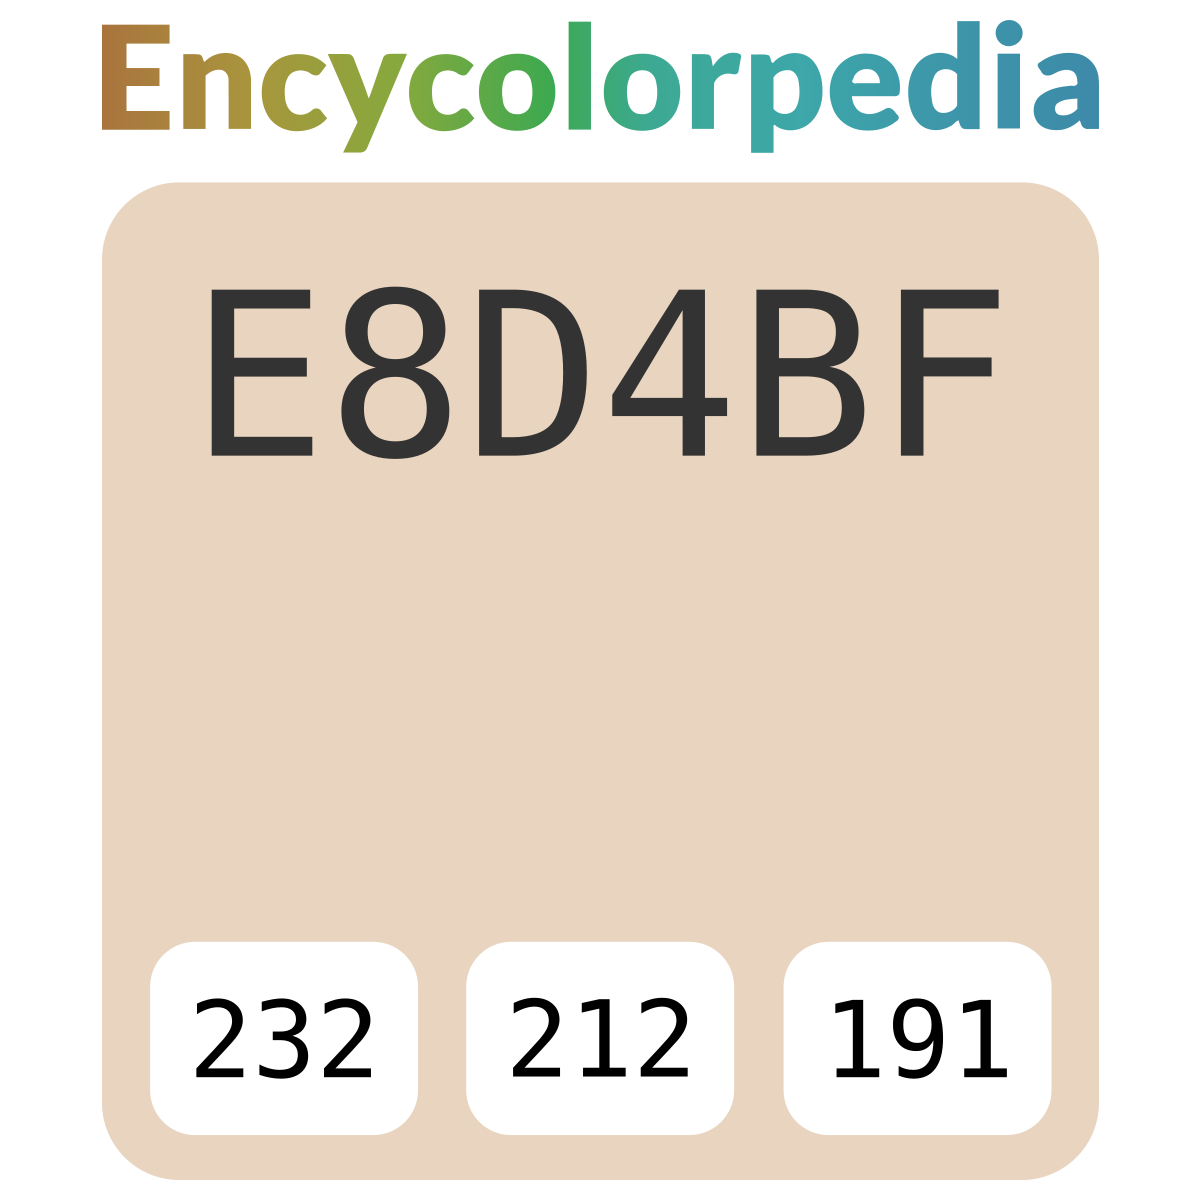 Pantone / PMS 4685 / #e8d4bf Hex Color Code Schemes & Paints